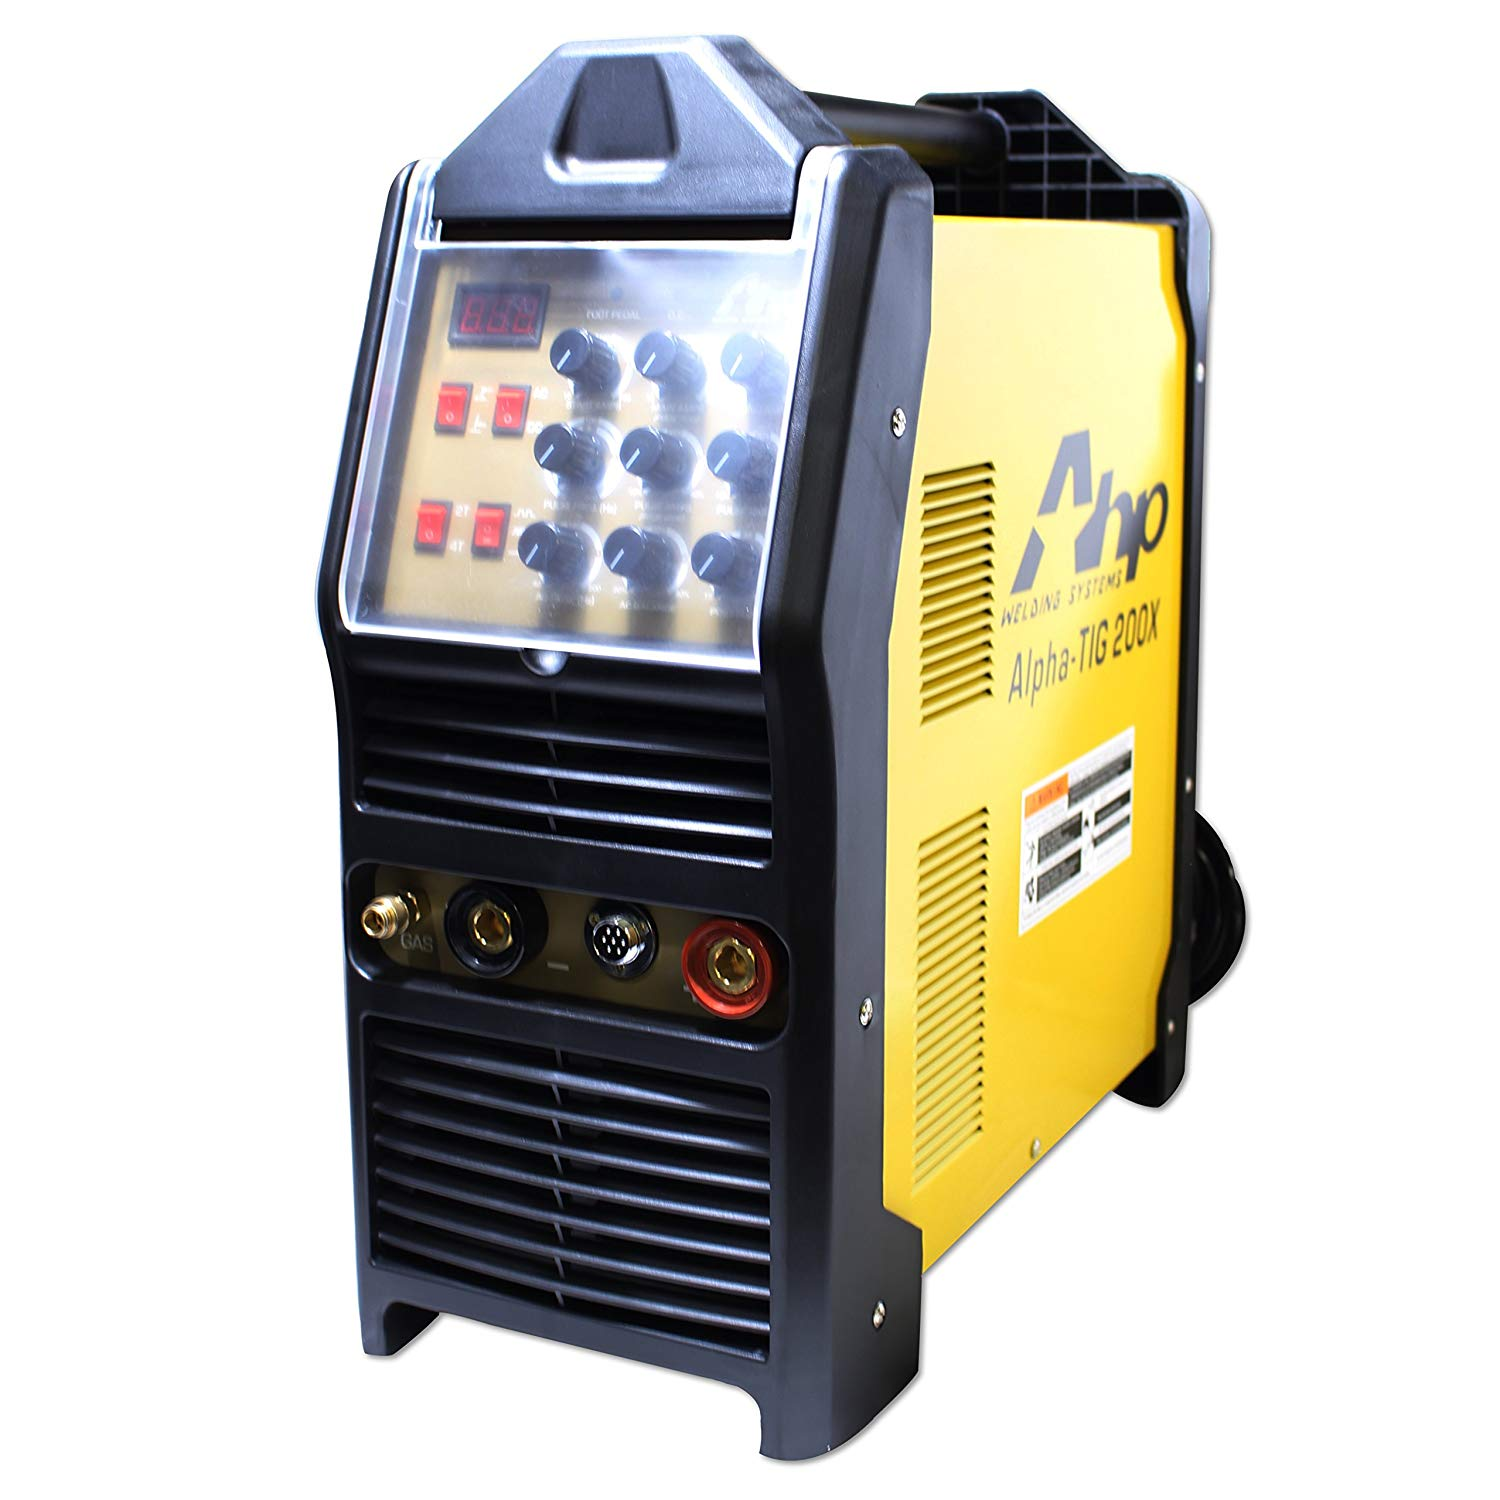 ahp stick welder review